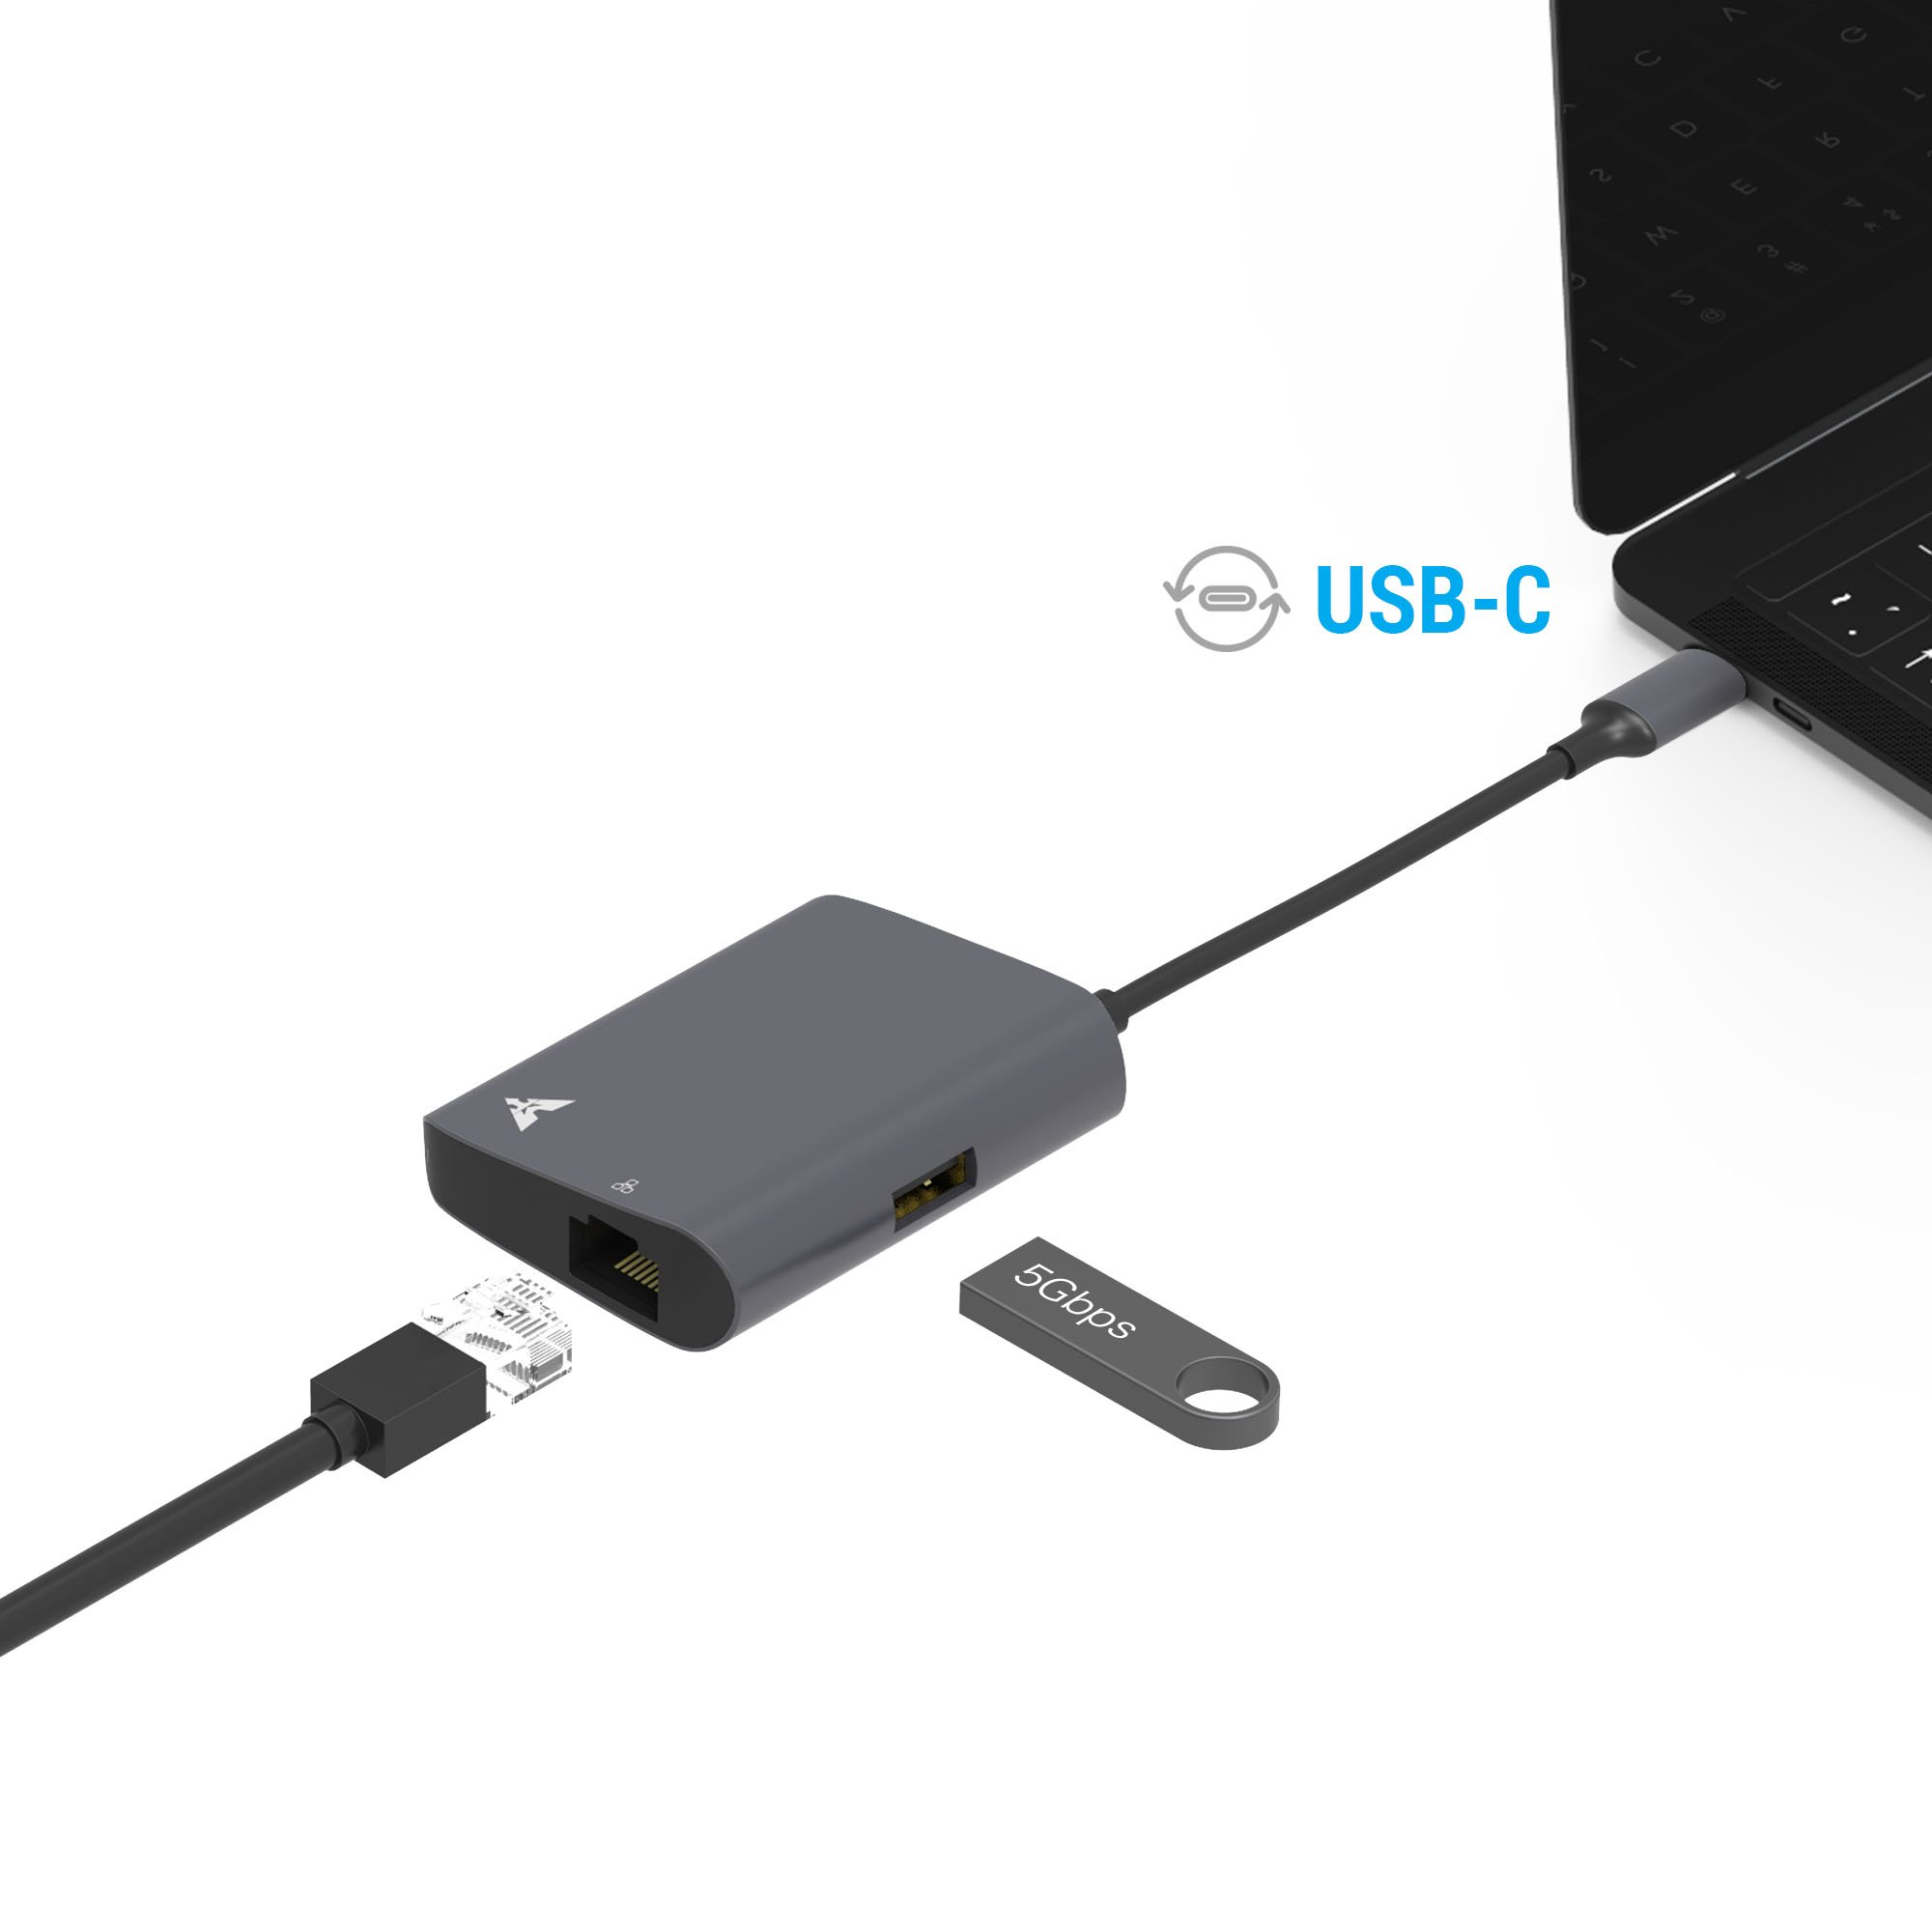 USB C to Ethernet Adapter, MAKETECH Slim Aluminum USB Type-C to Gigabit Ethernet Network & USB 3.0 HUB Adapter for 016/2017 Macbook Pro 2016, 2015/2016 Macbook, Chromebook Pixel and More